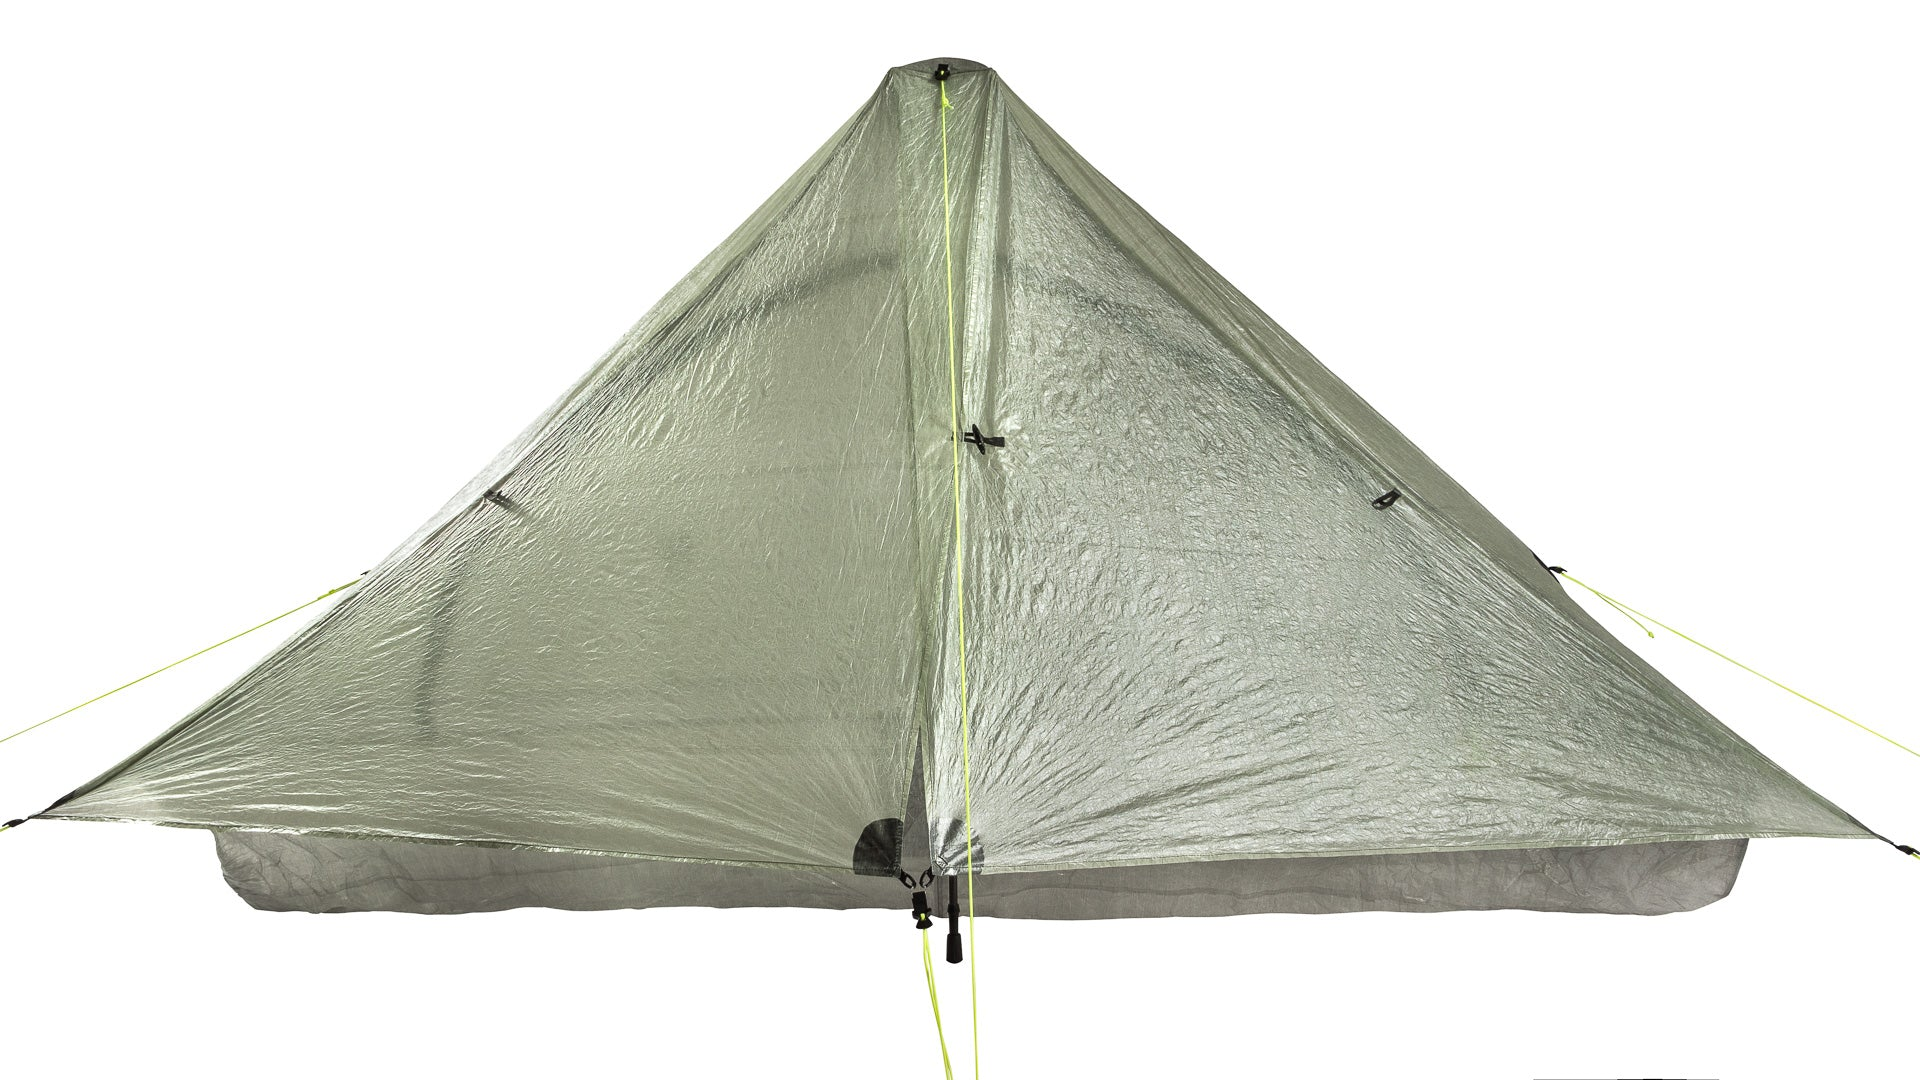 ... of the Plexamid is available with smaller linelocs and a thinner cord. If you would like to help us evaluate it check out the Plexamid V Beta tent  sc 1 st  Zpacks & Ultralight One Person Tent | Lightest 1 Person Solo Hiking Shelter ...